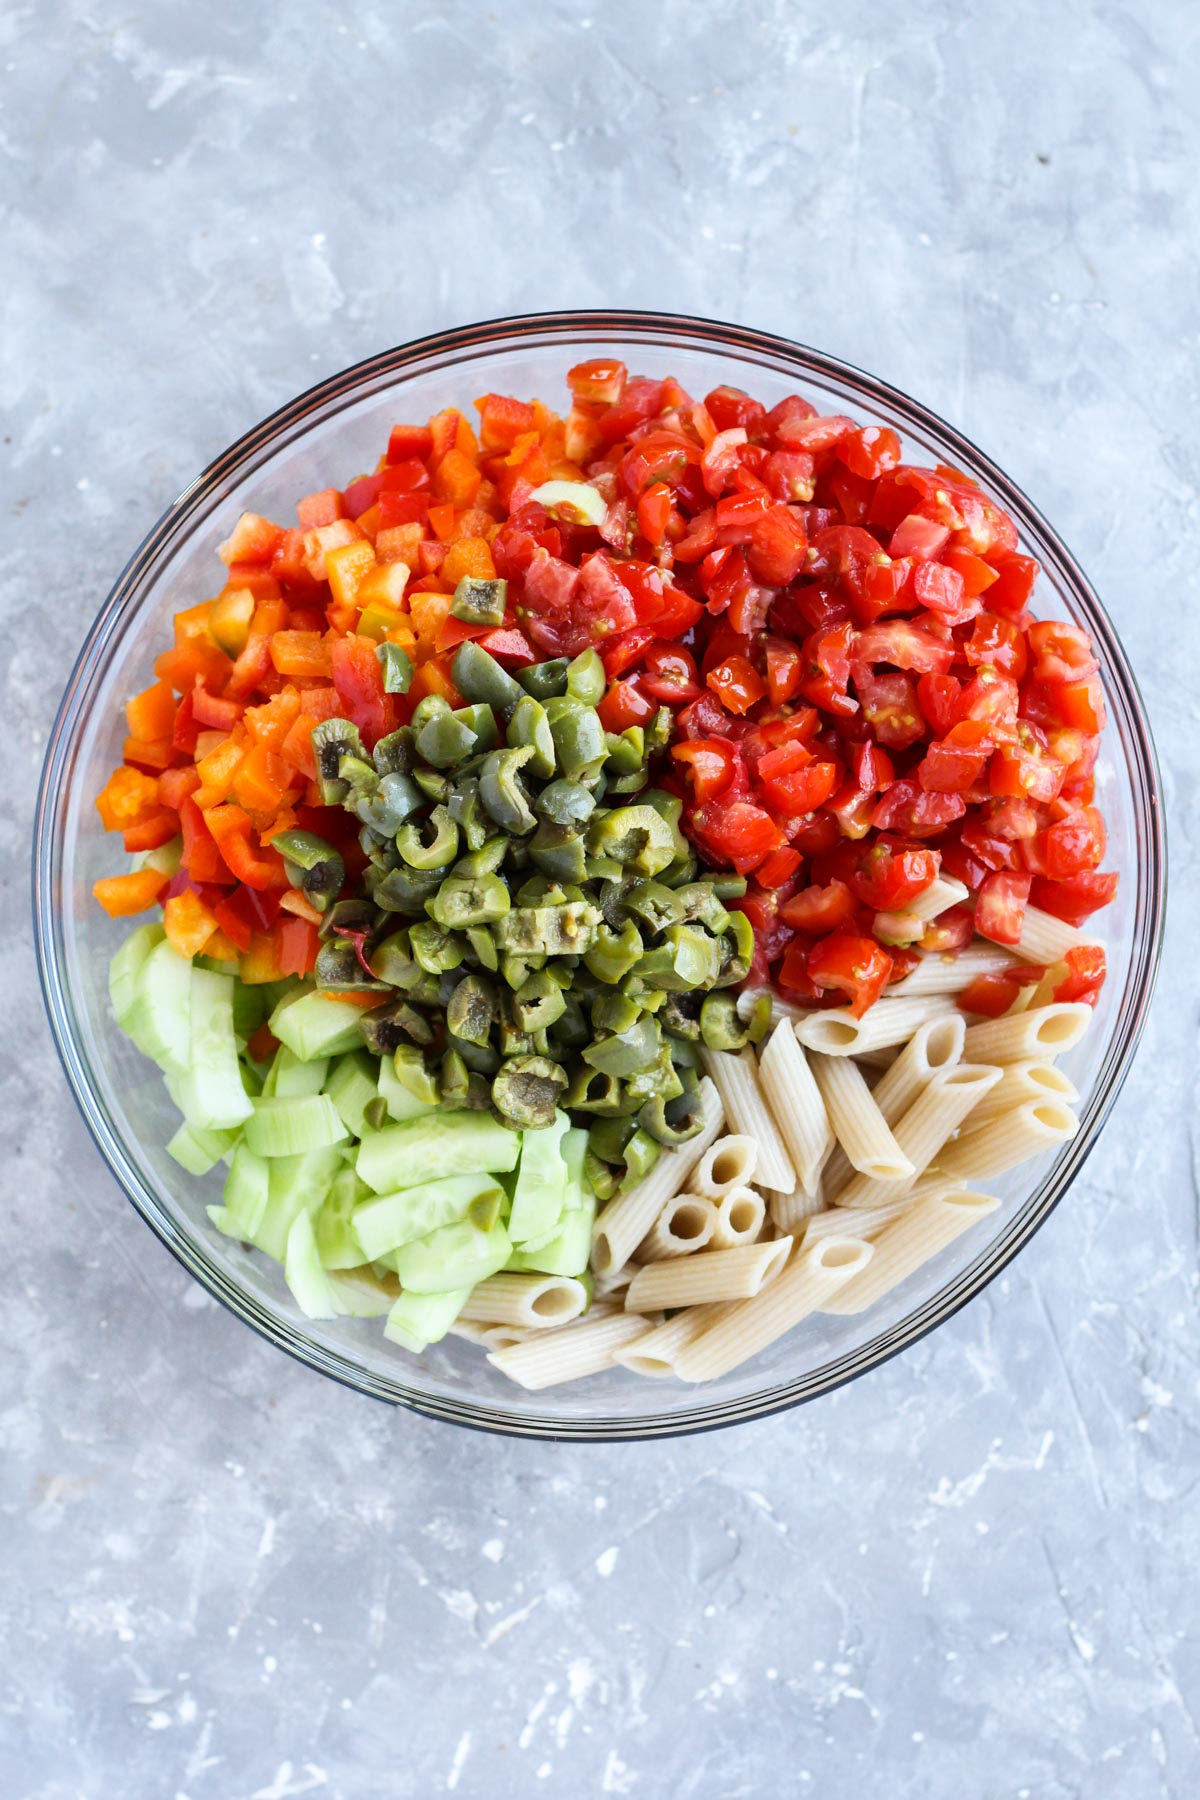 Mixing bowl filled with vegetables and pasta.